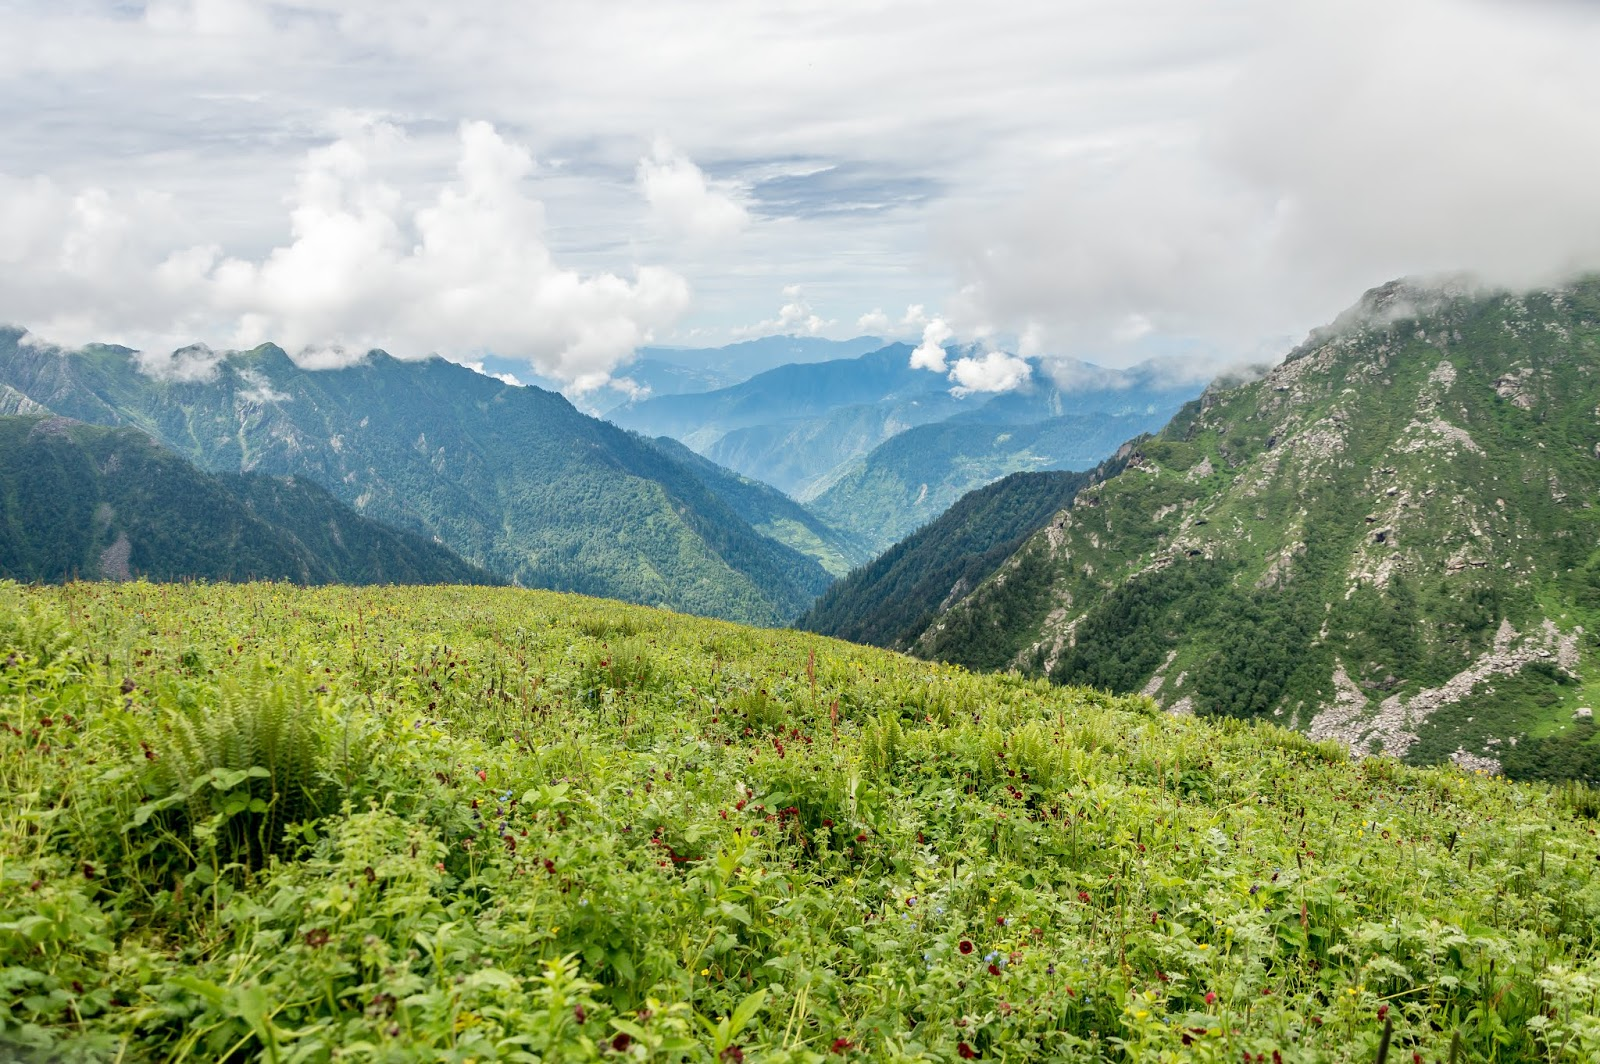 Valley of Flowers, but the green is dominating the flowers